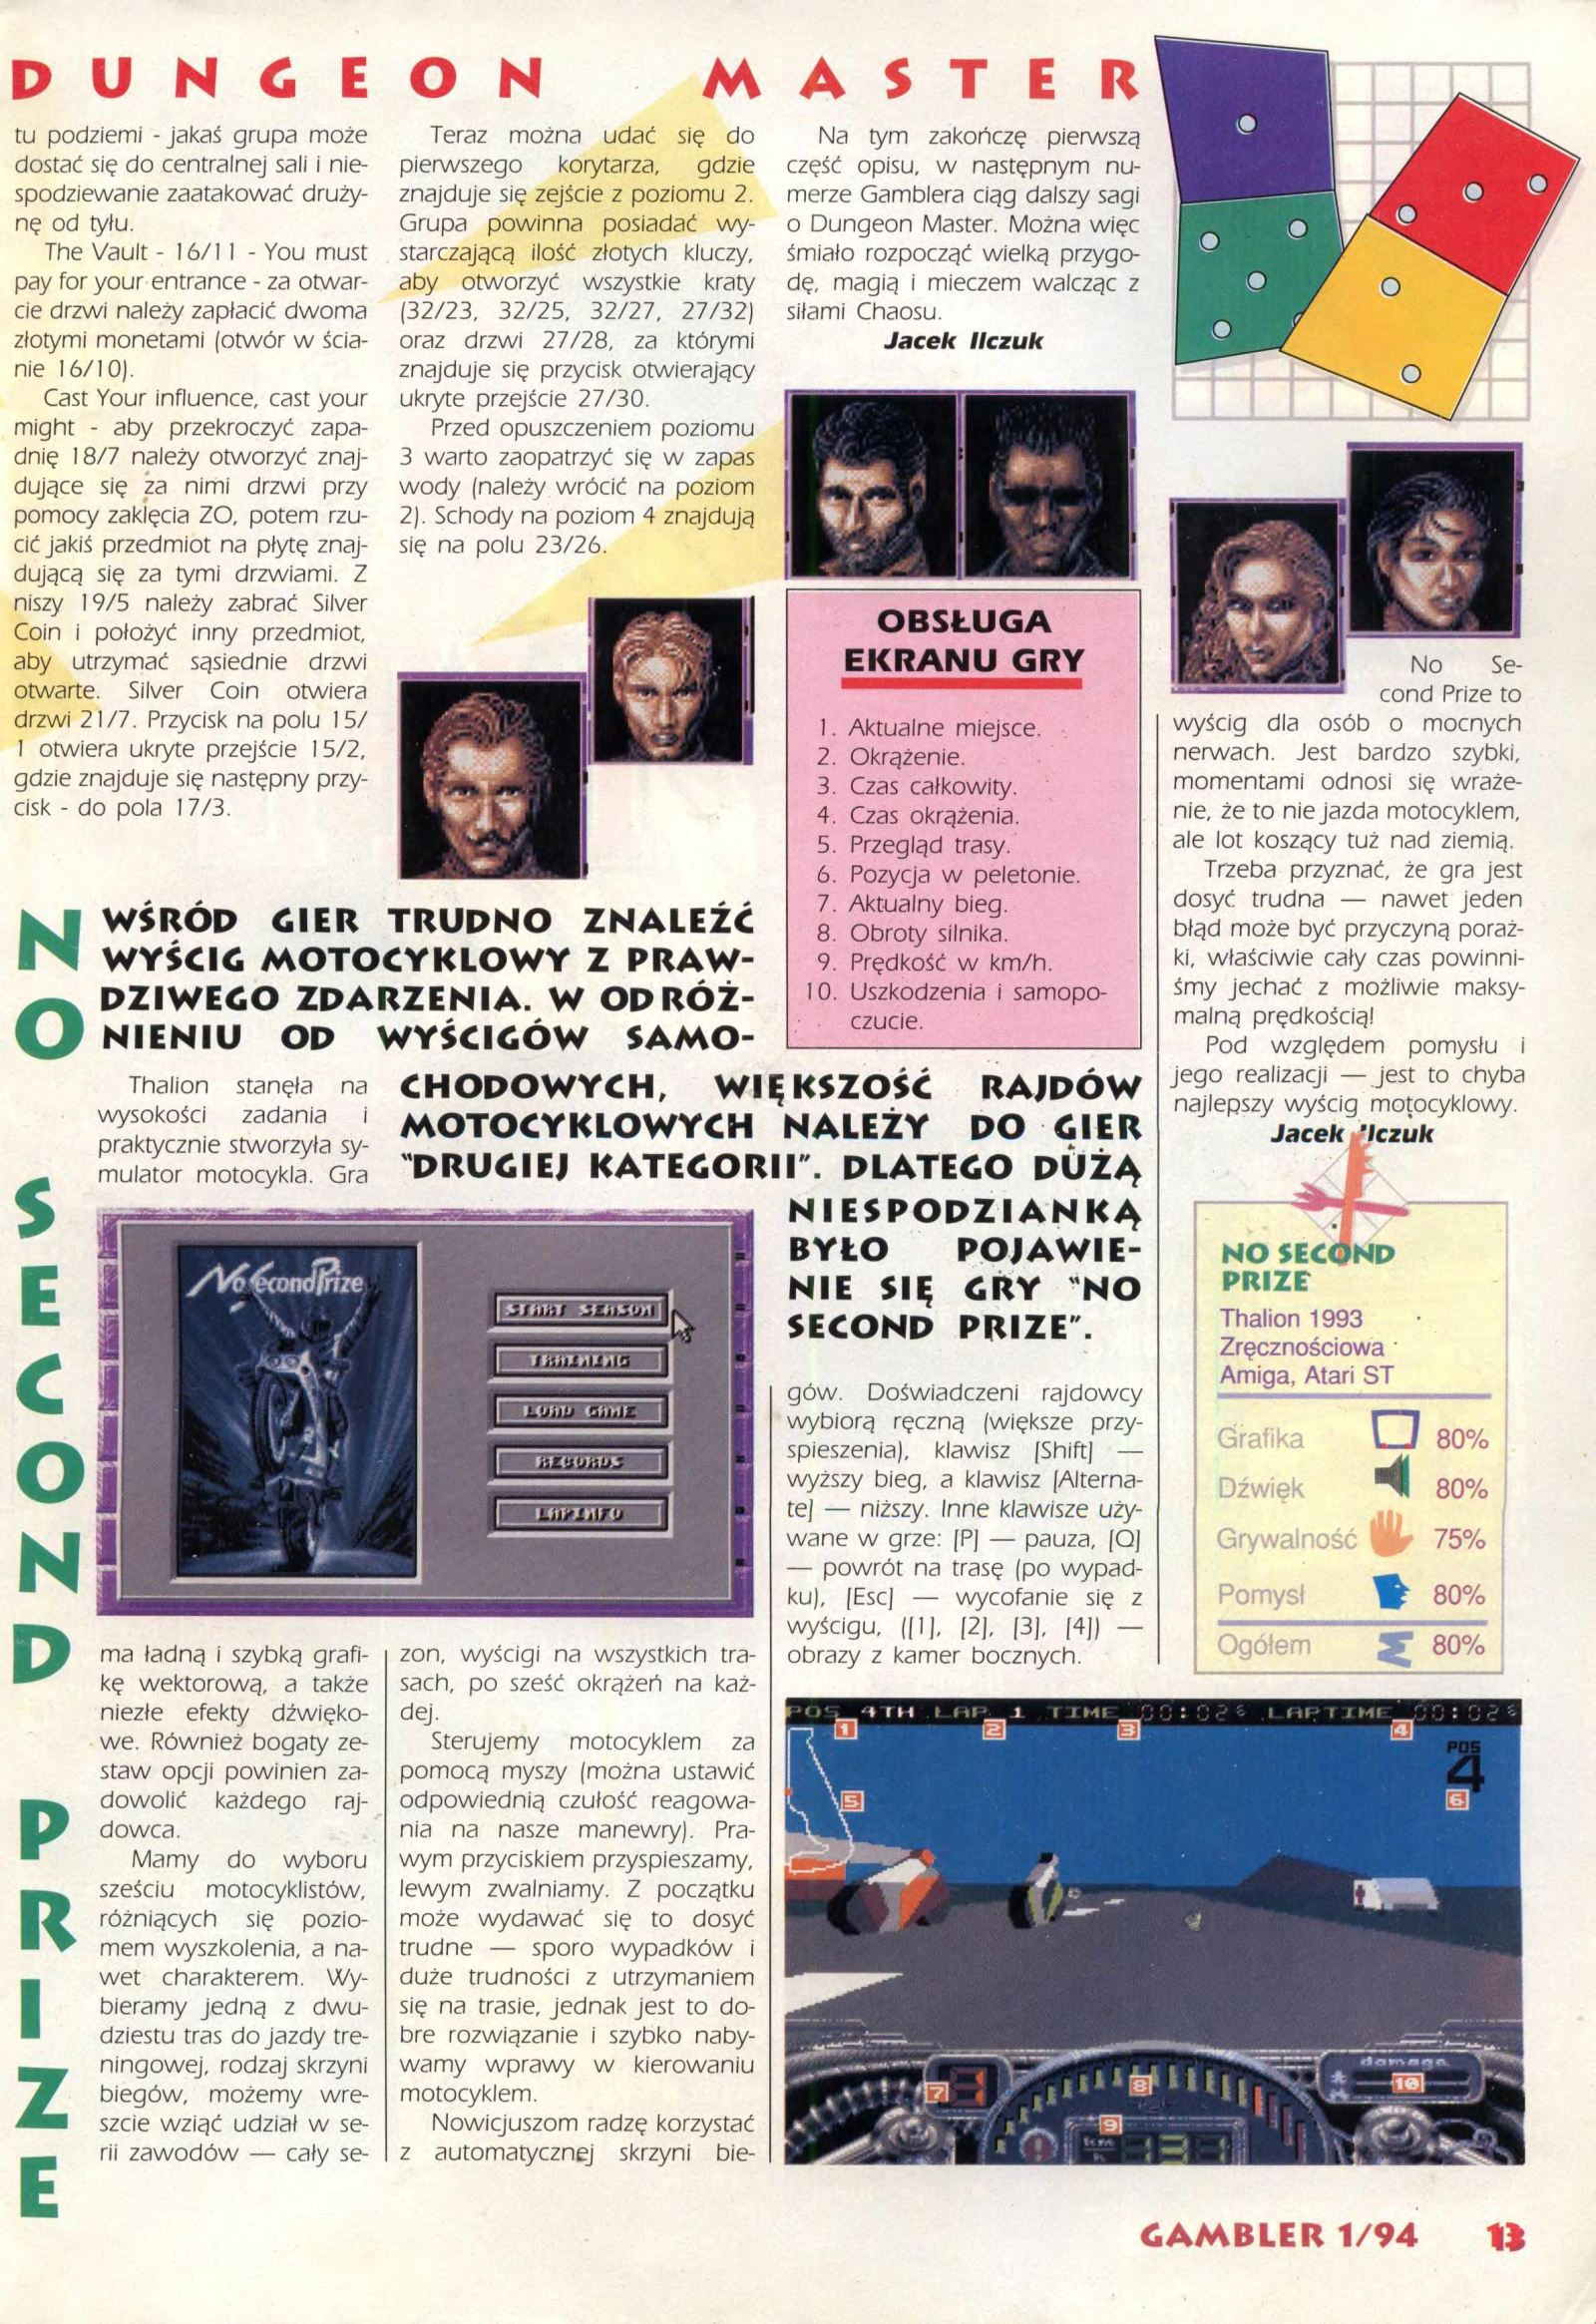 Dungeon Master Guide published in Polish magazine 'Gambler', January 1994, Page 13